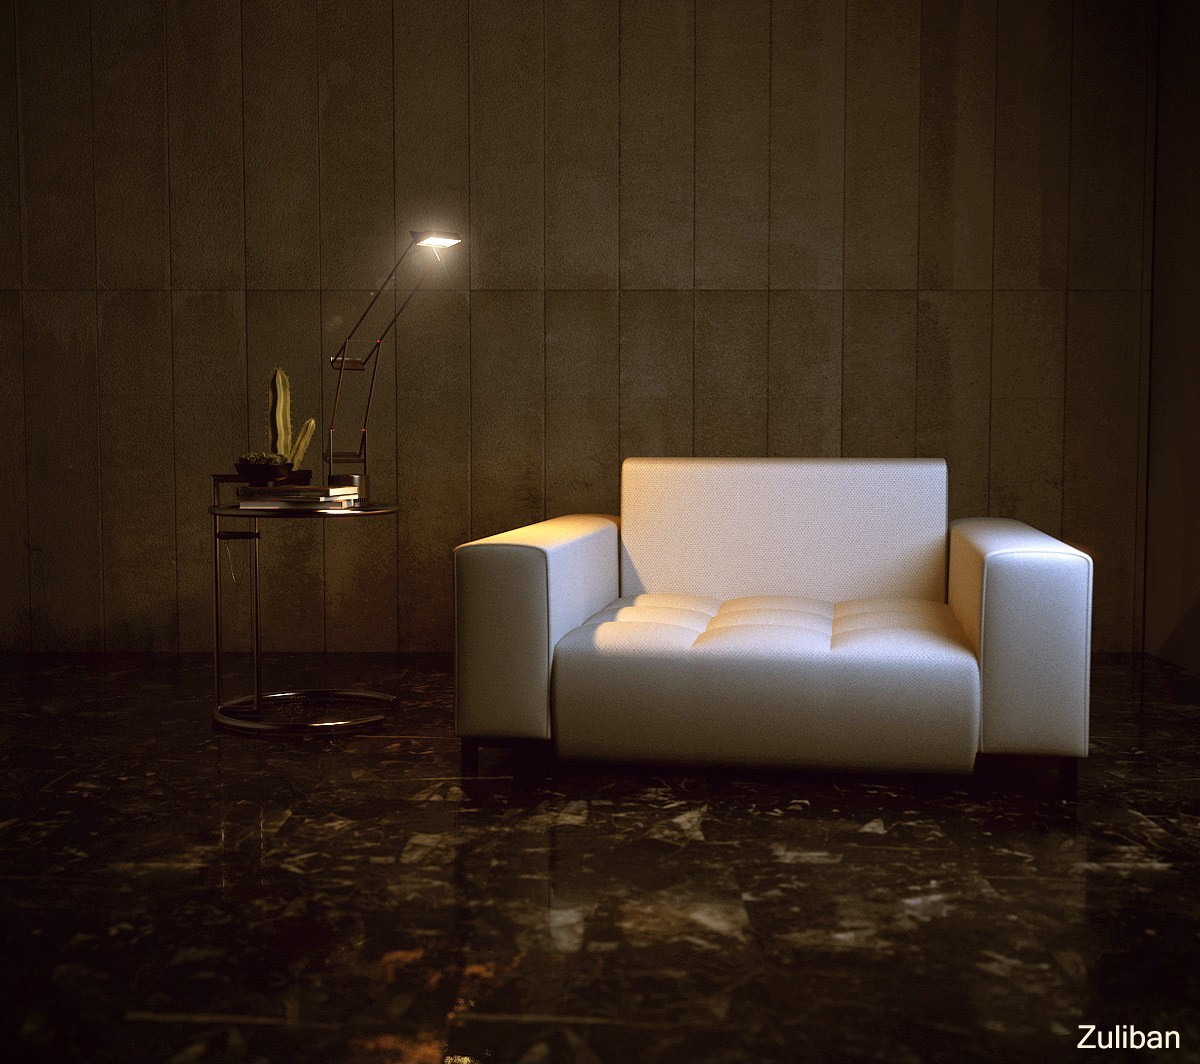 Zuliban sofa showroom 1 ee94e61f wb04